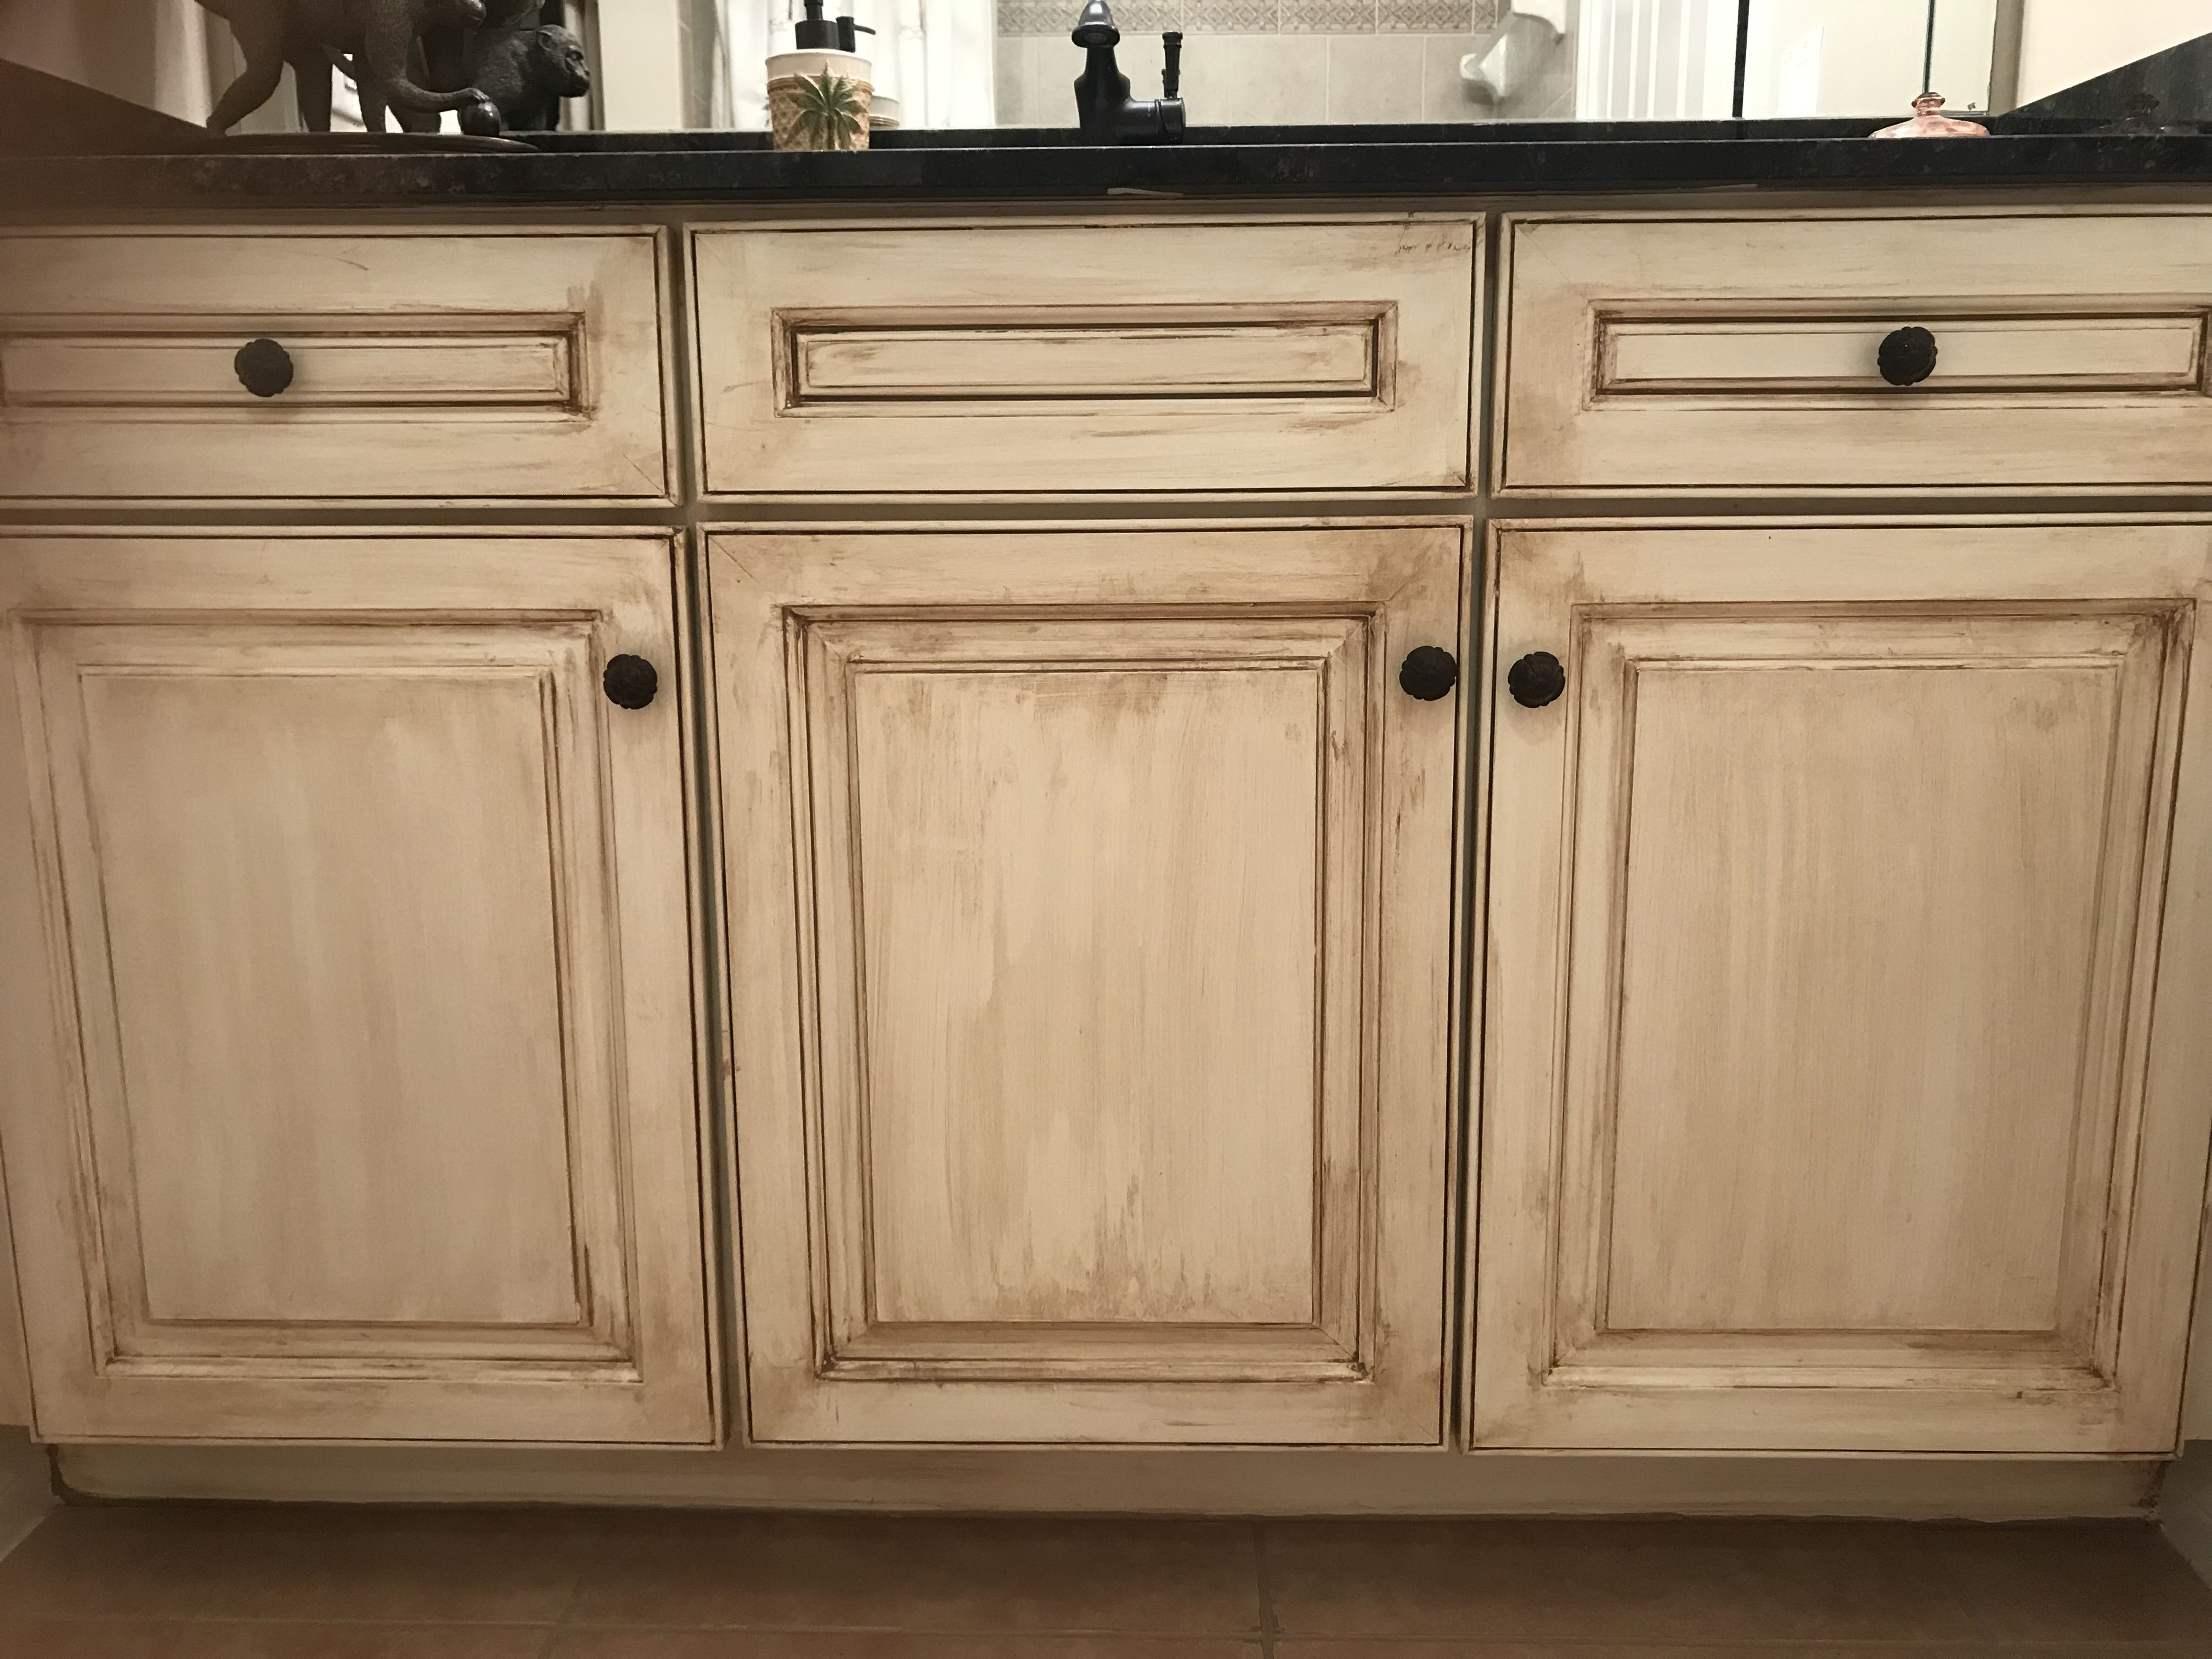 Pin By Swan Studios Inc On Faux Finishes Painted Finishes On Cabinets Cabinet Refresh Kitchen Cabinets In Bathroom Painting Cabinets